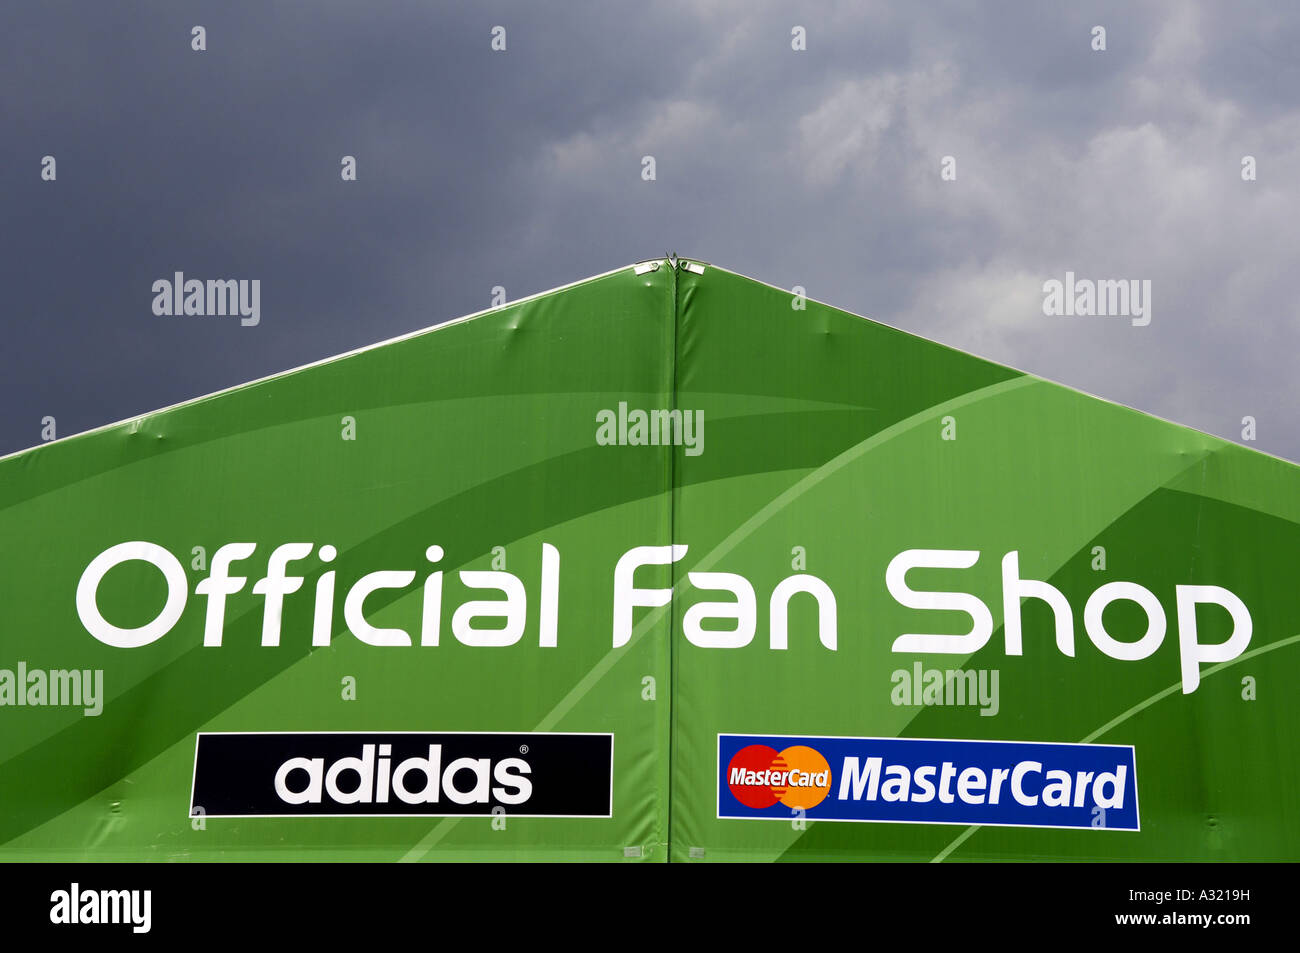 ad81e0d71 official fan shop fifa world cup 2006 hamburg germany german deutschland  deutsch colour color clouds stormy